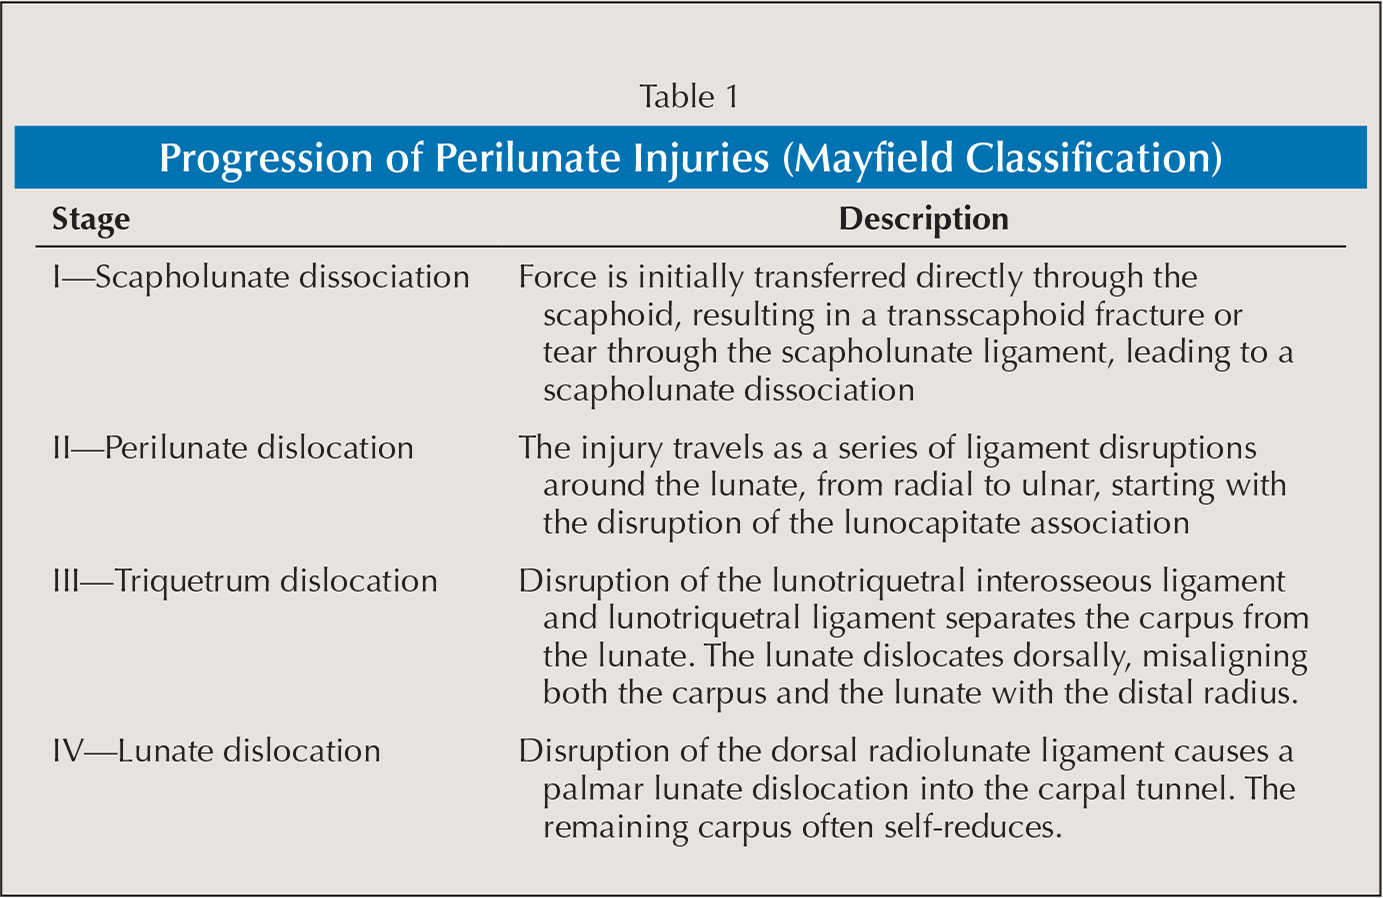 Progression of Perilunate Injuries (Mayfield Classification)